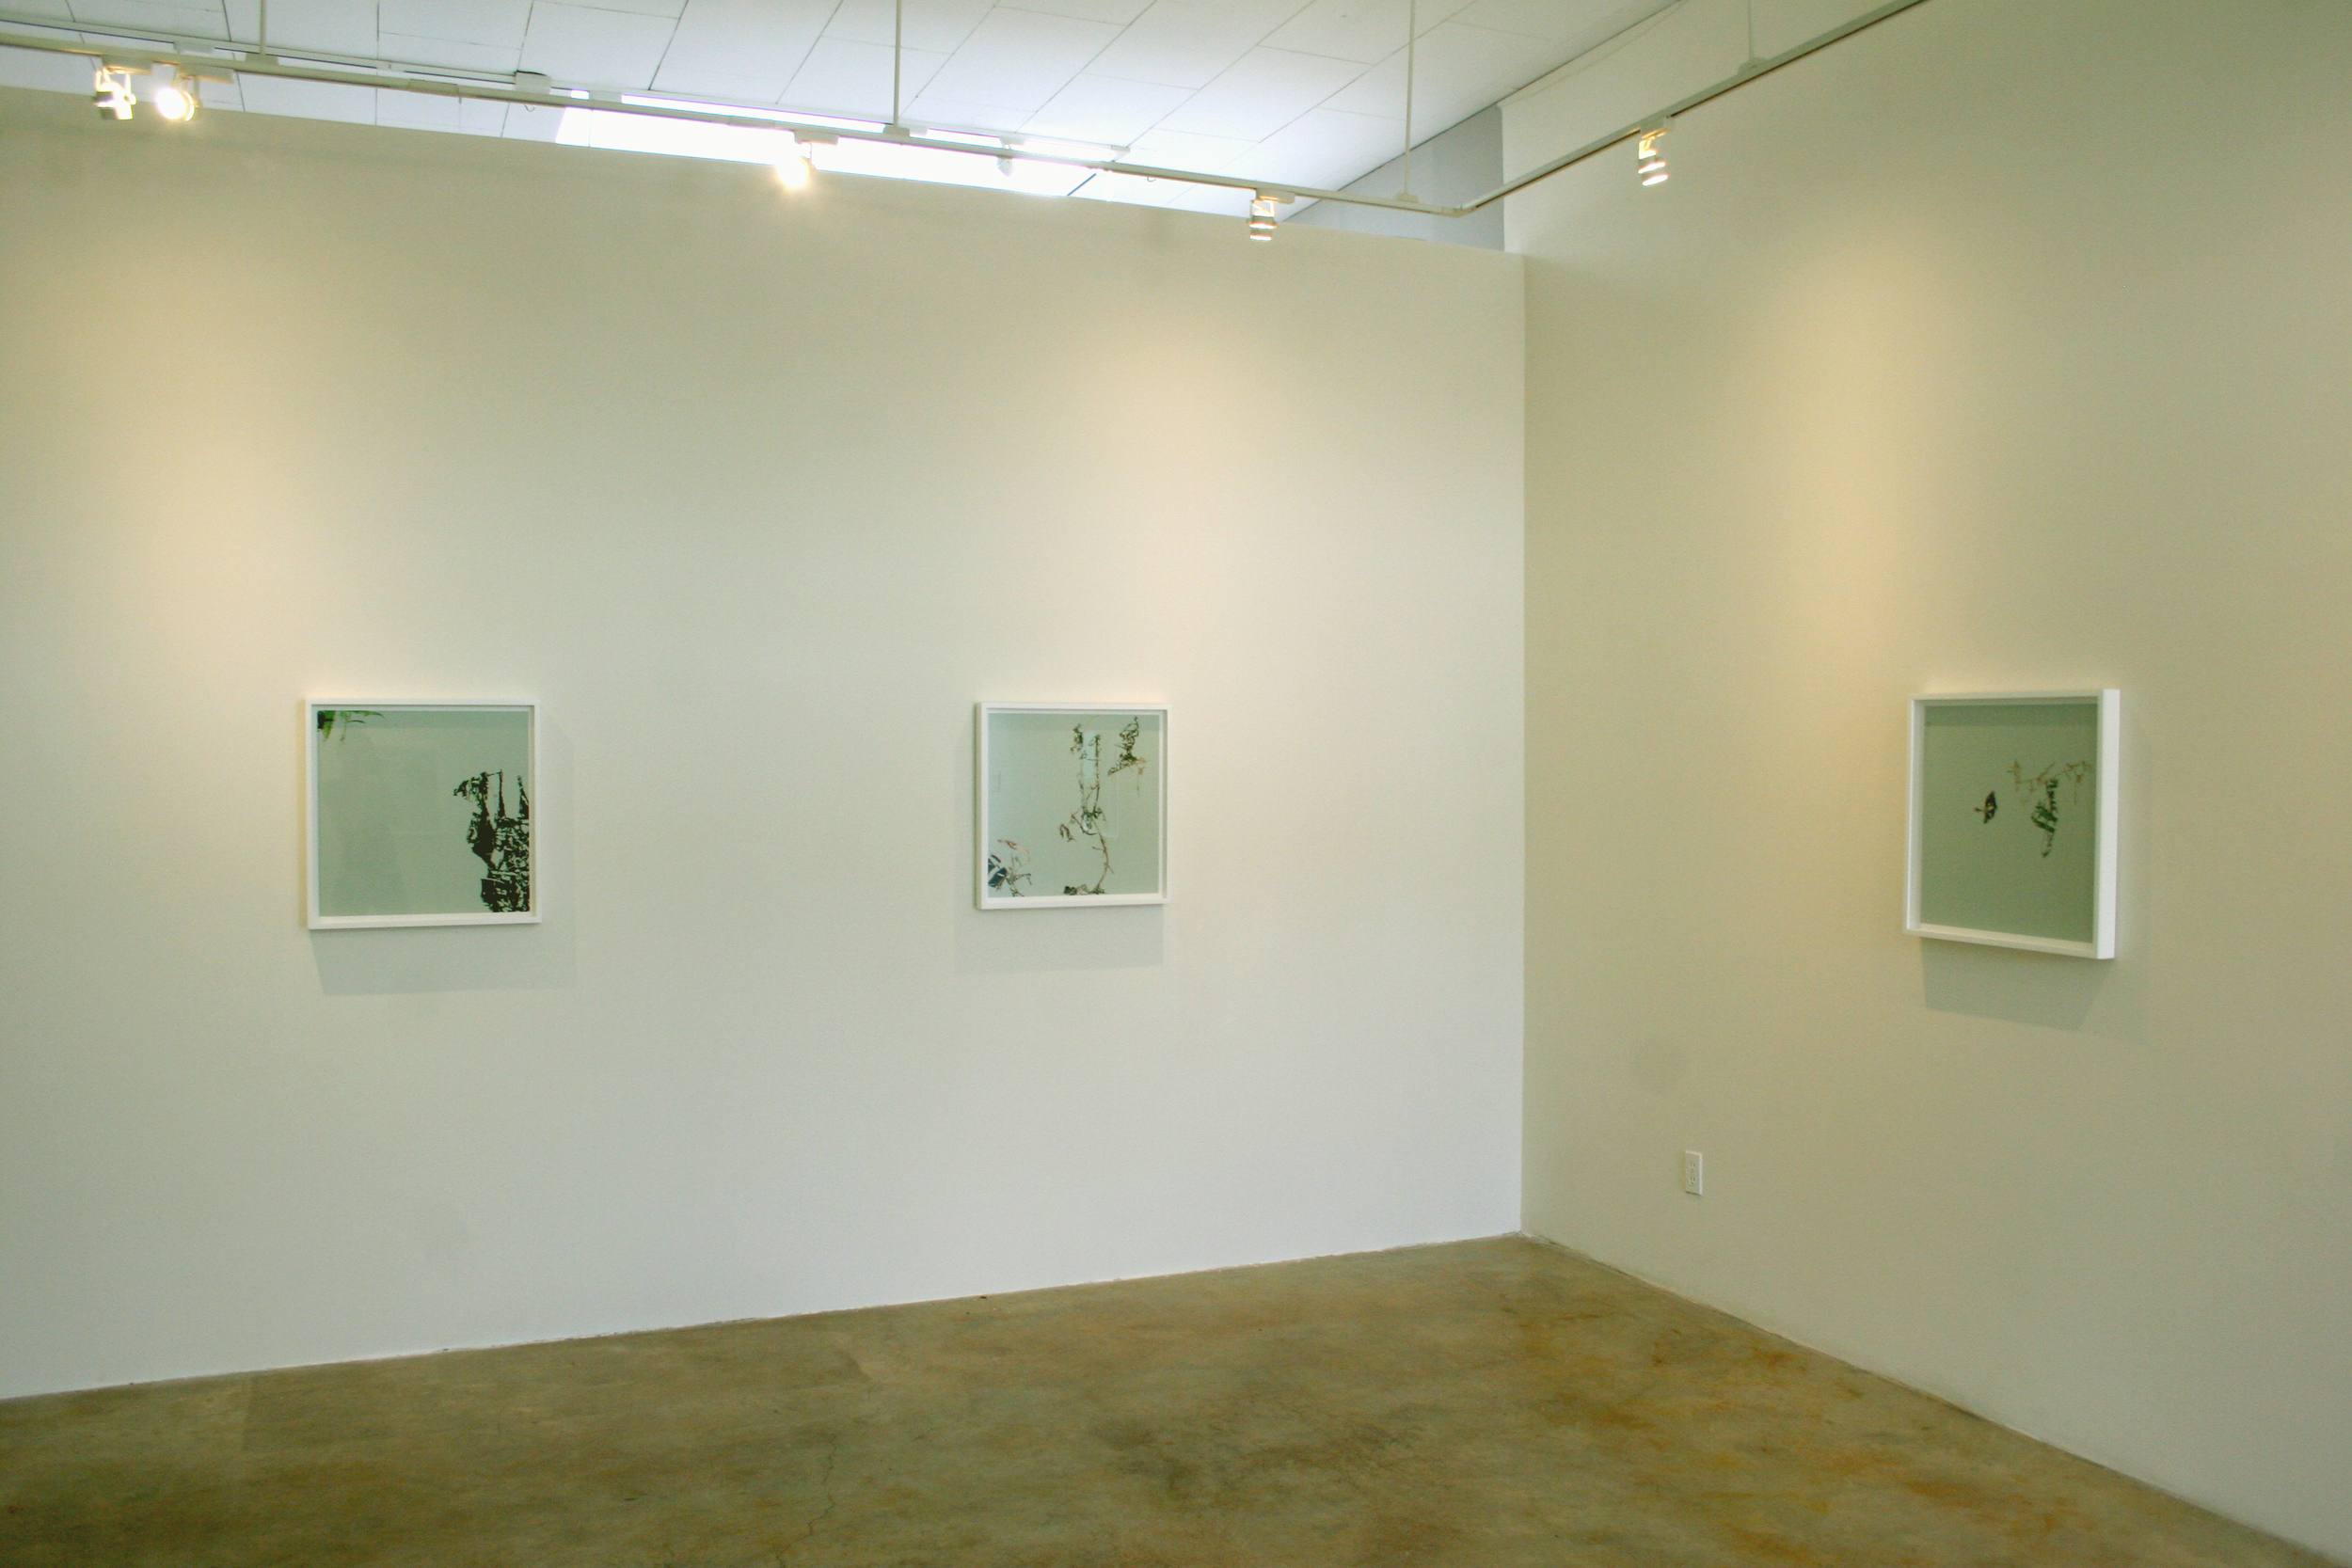 Cryptofloriography (installation view), 2007